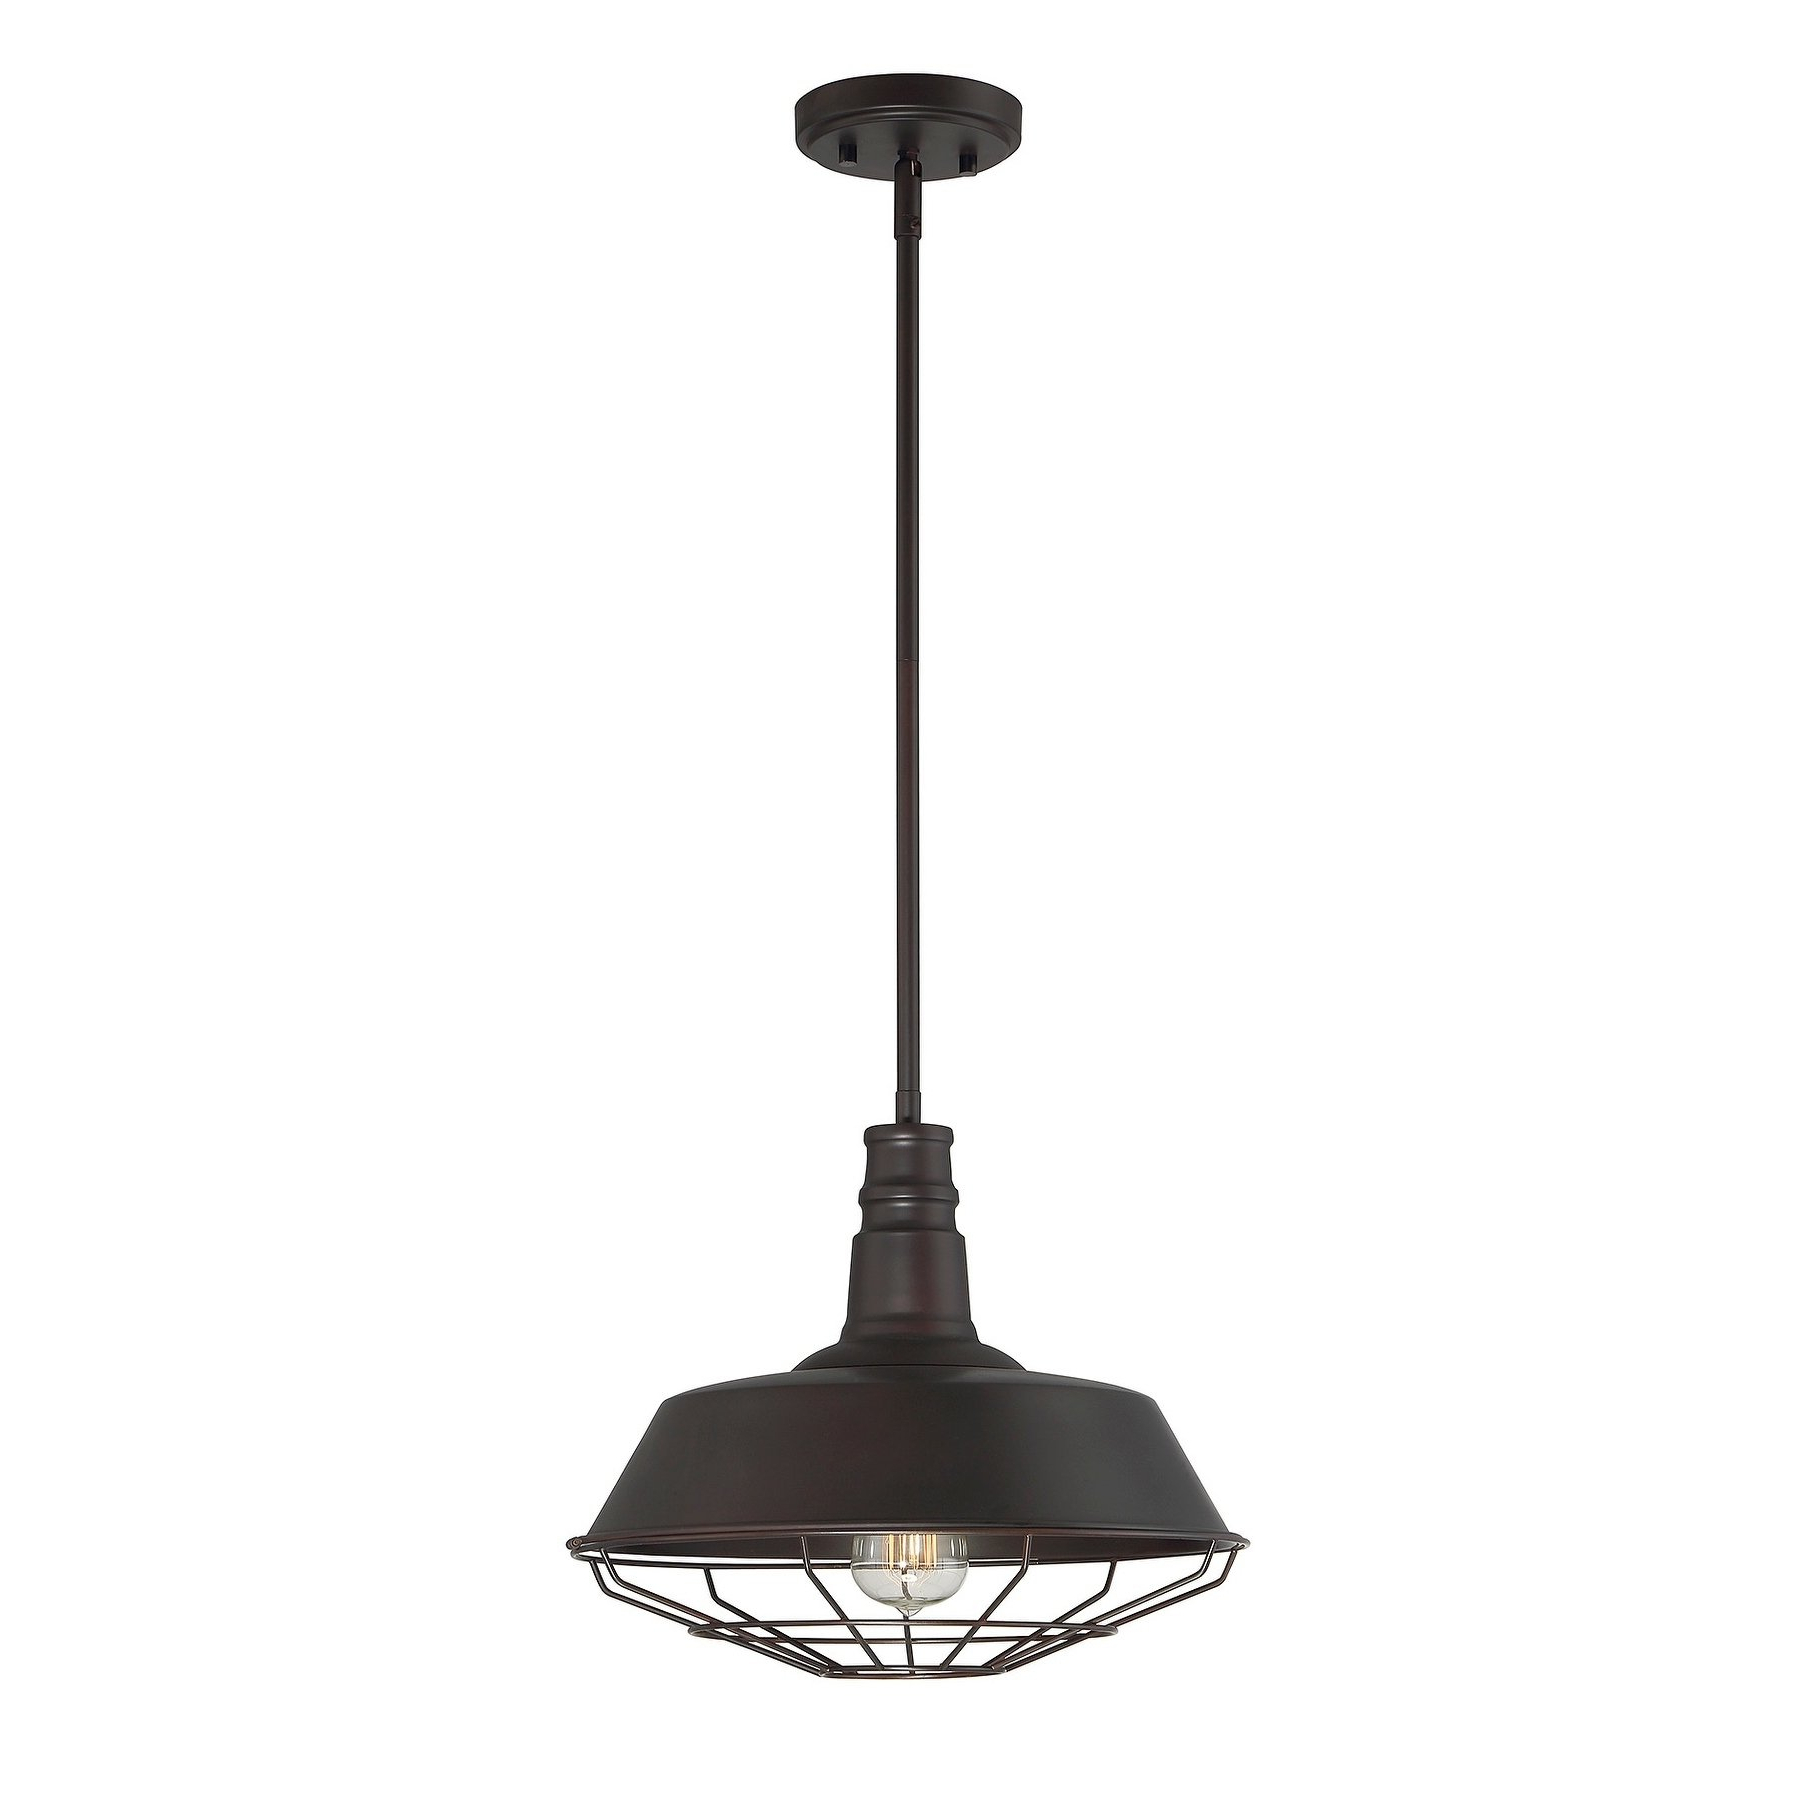 Carbon Loft Melville 1 Light Pendant With Oil Rubbed Bronze Throughout 2019 Freeda 1 Light Single Dome Pendants (Gallery 15 of 20)